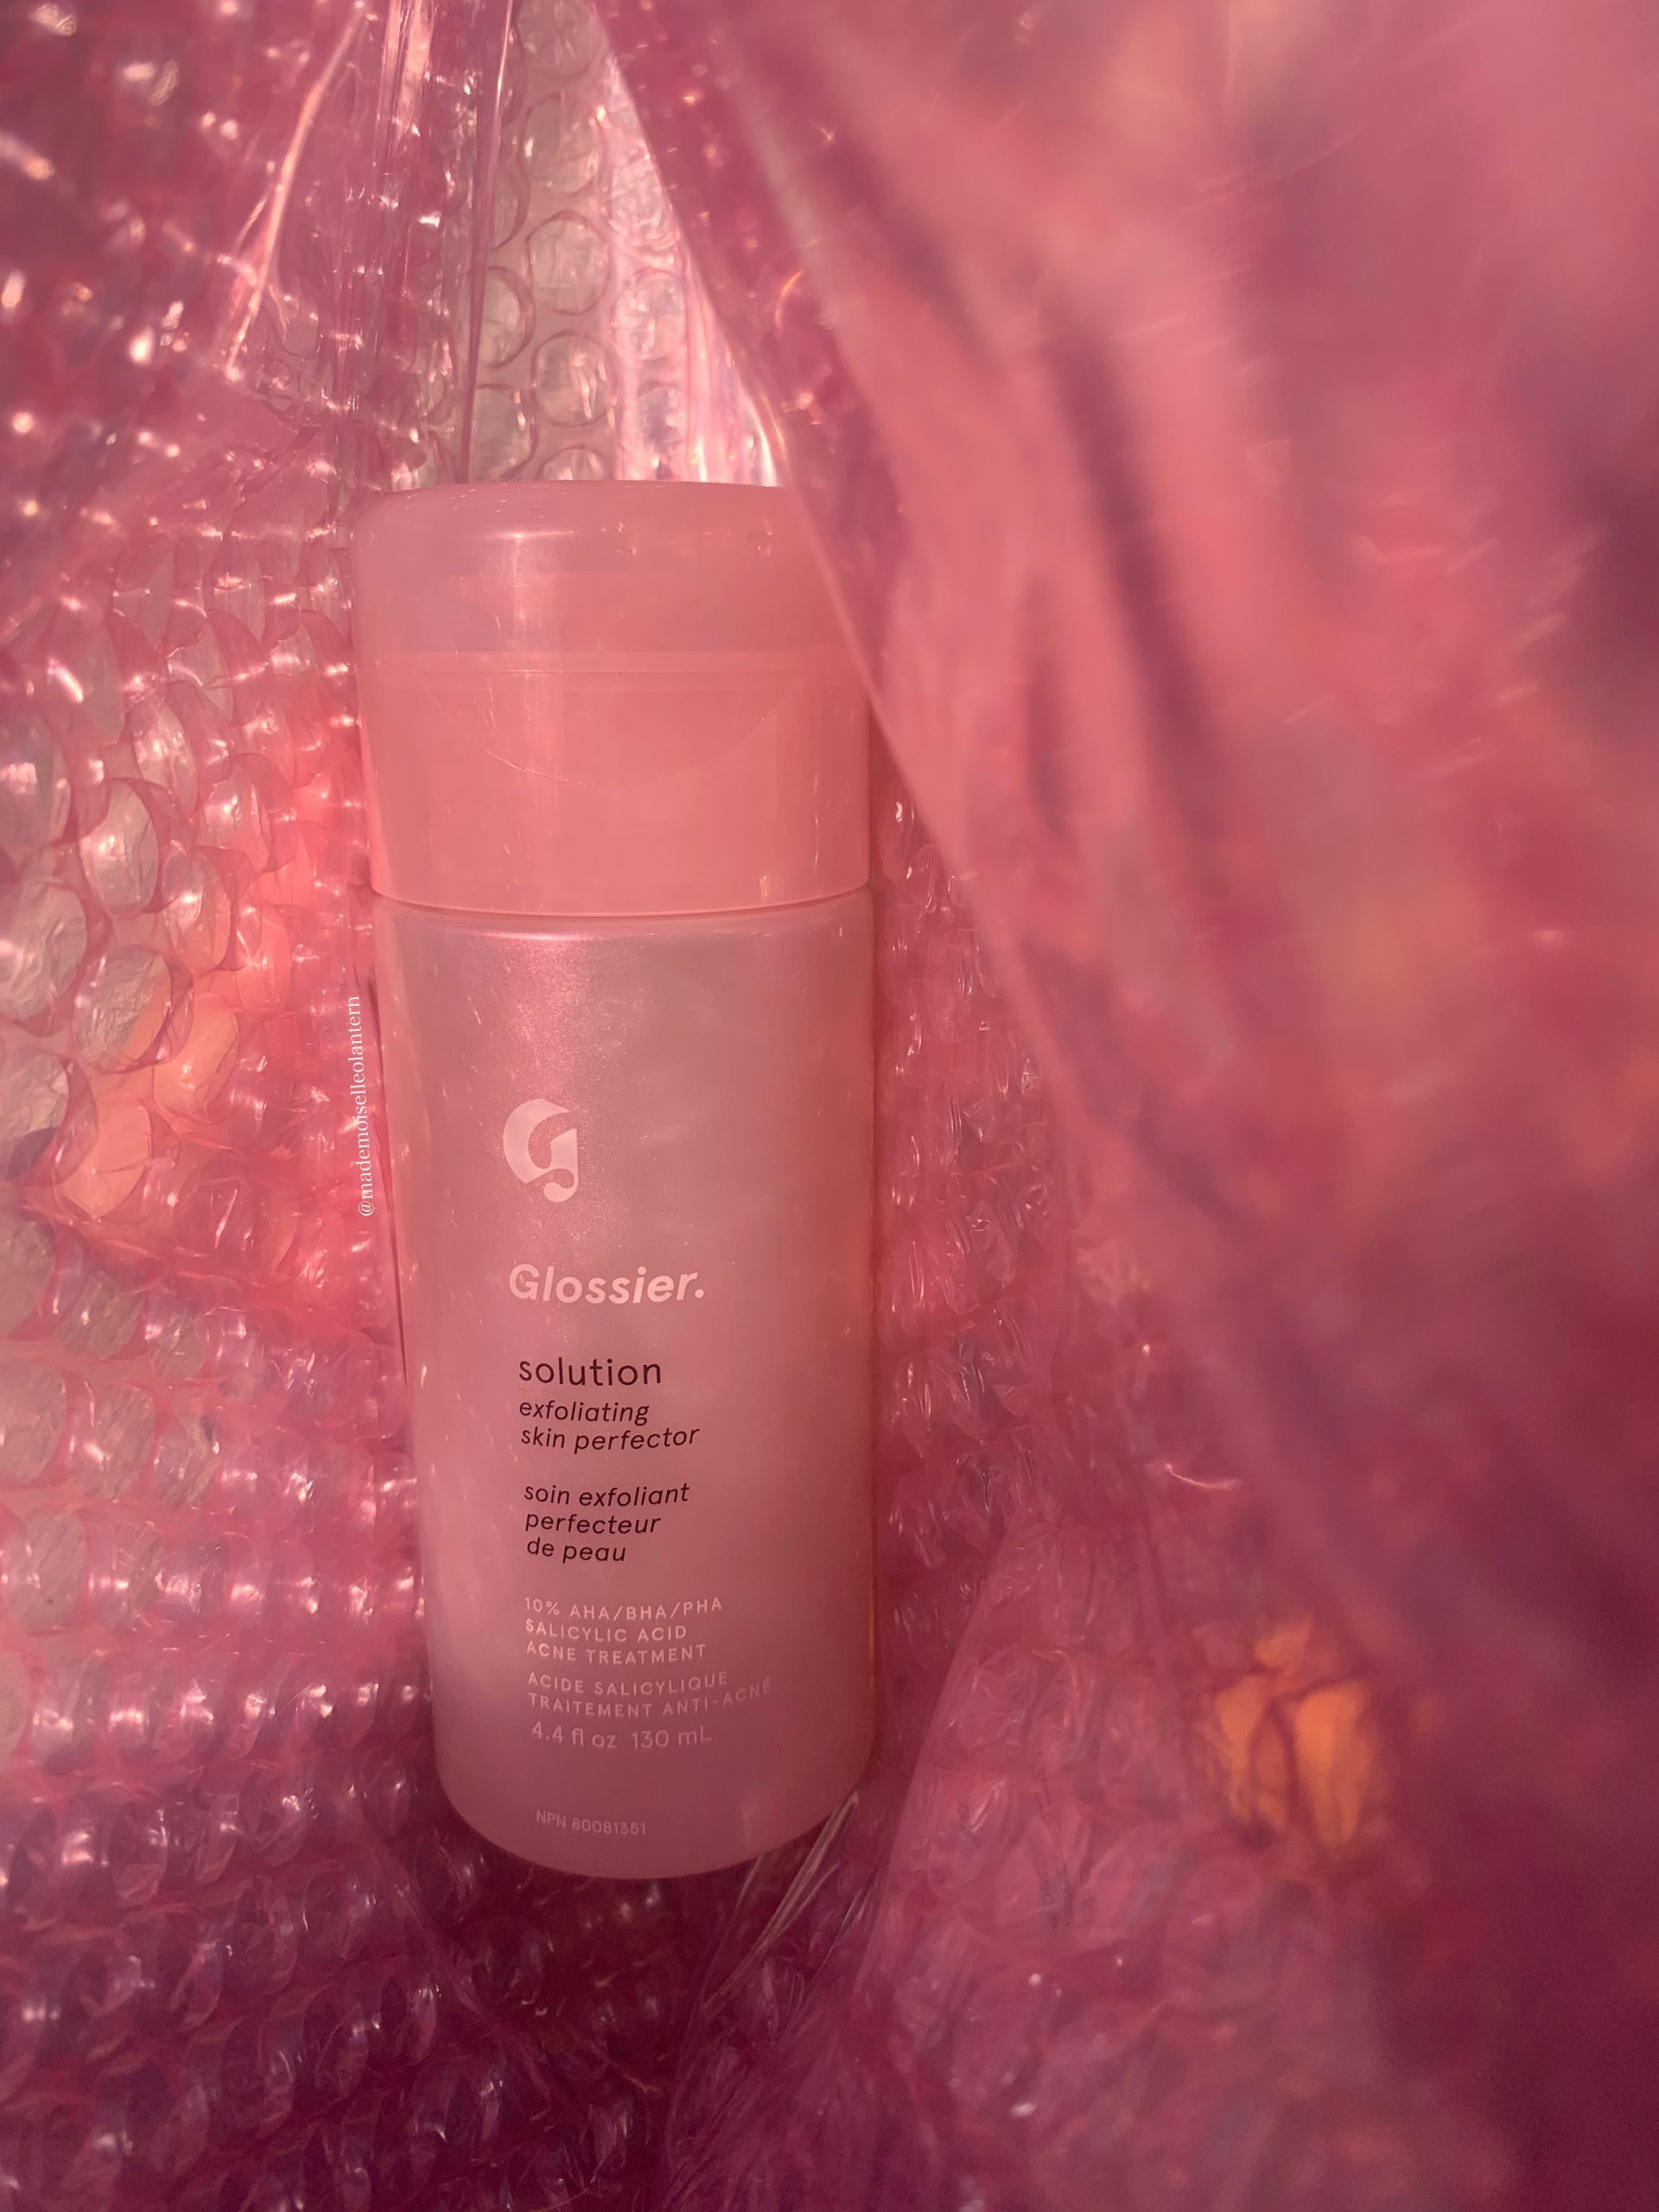 glossier solution review 2